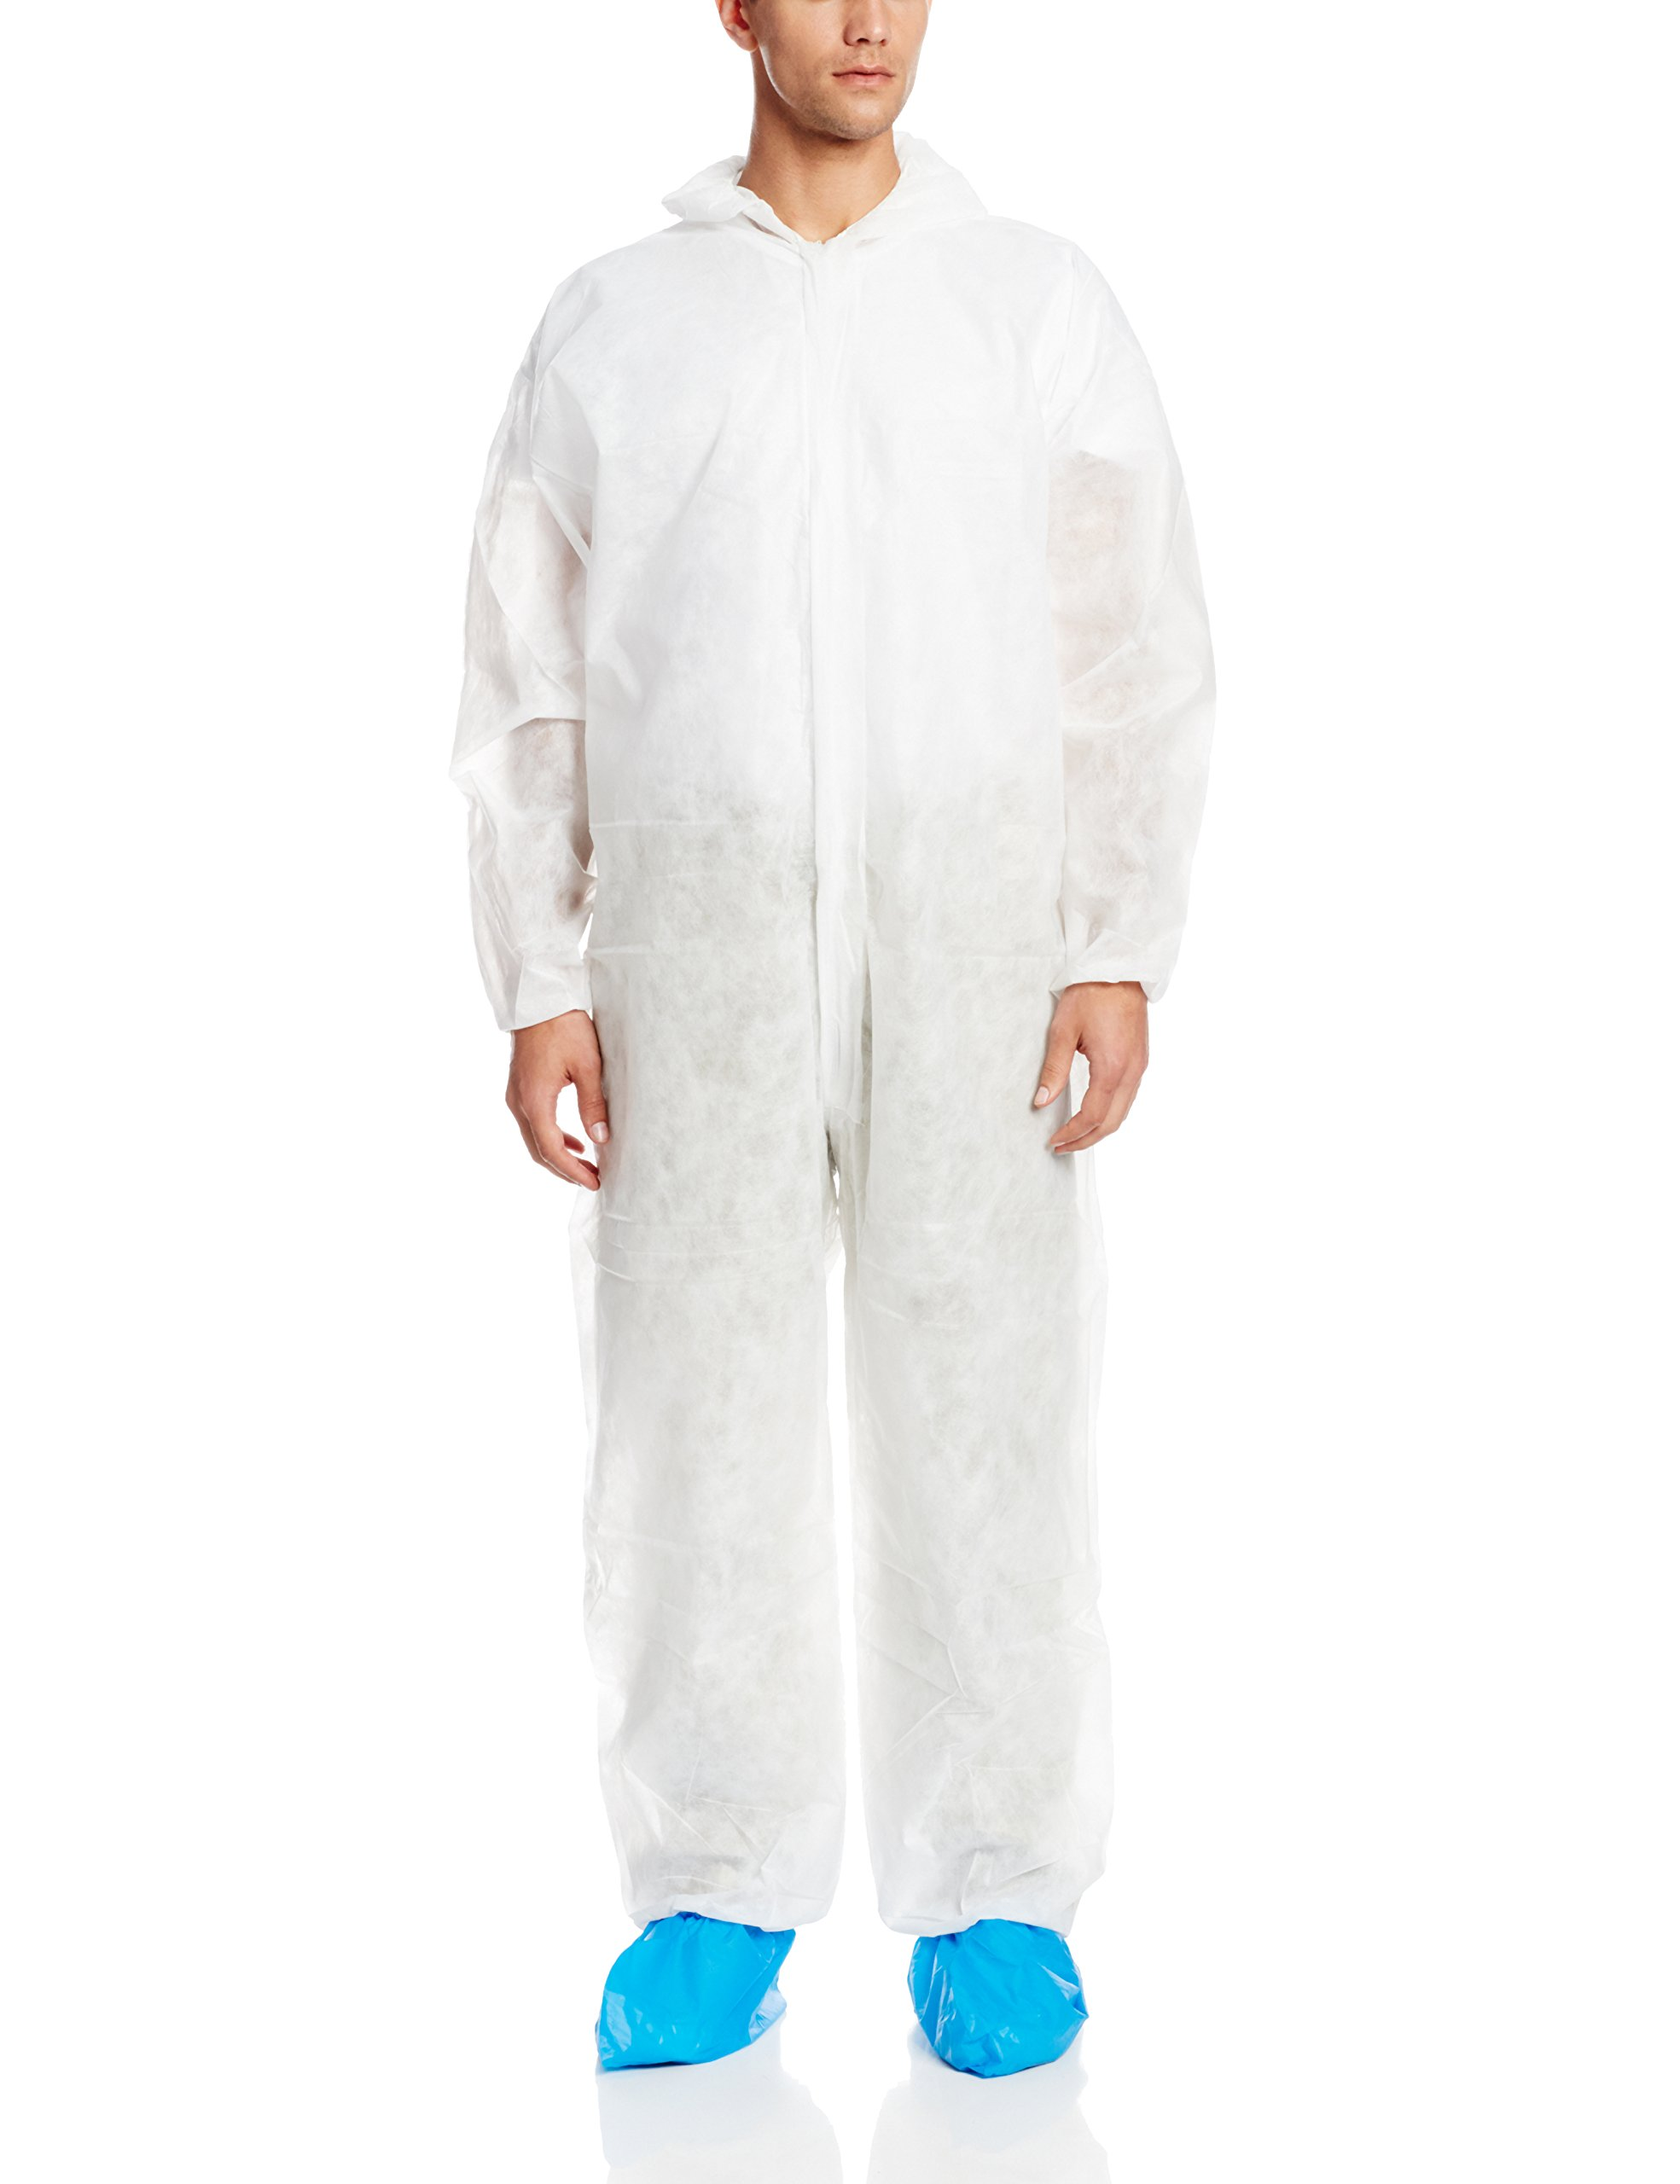 ValuMax 4204WH2XL Polypro-2 Disposable Polypropylene Coverall, 47 Gram Fabric, Hood (No Boot), Elastic Cuffs, White, 2XL, Case of 25